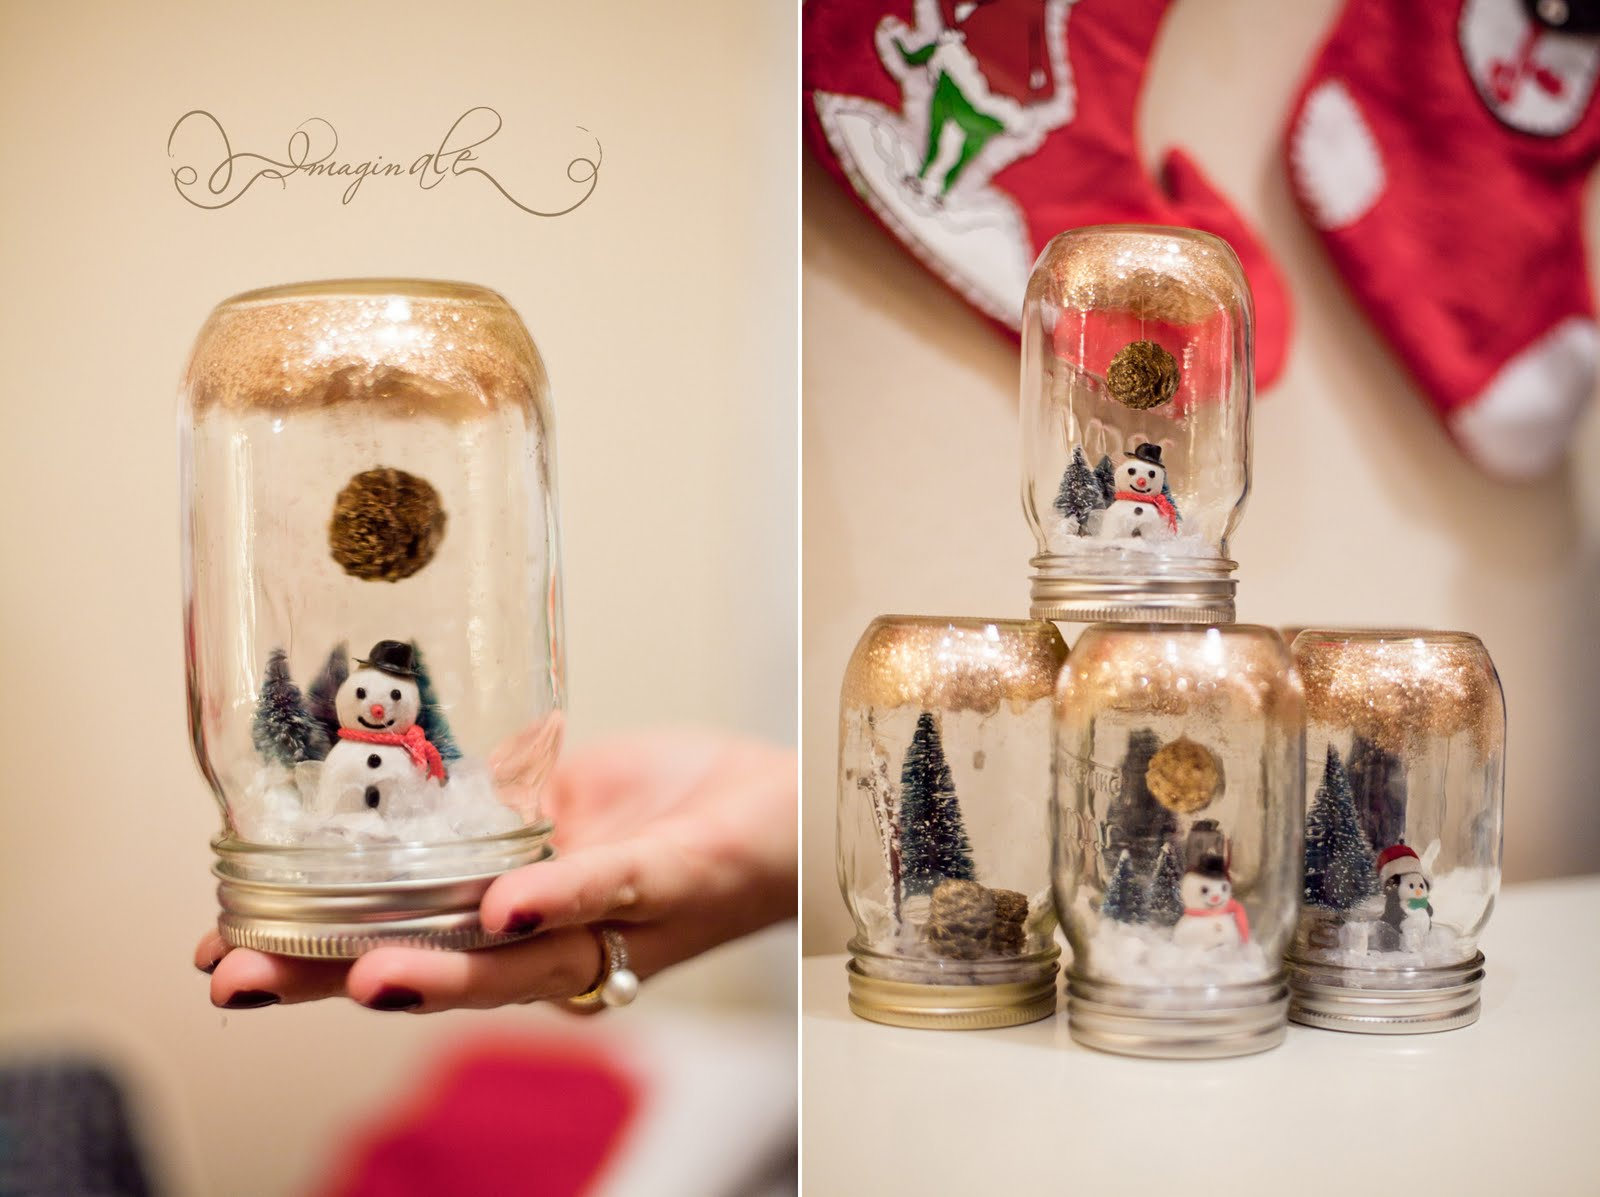 Ale vidal diy anthropologie mason jar snowglobe i yelled many times in the process burning myself 3 times at least i made 9 of these for my party and i think i only put the hanging pine cones on 4 of solutioingenieria Choice Image